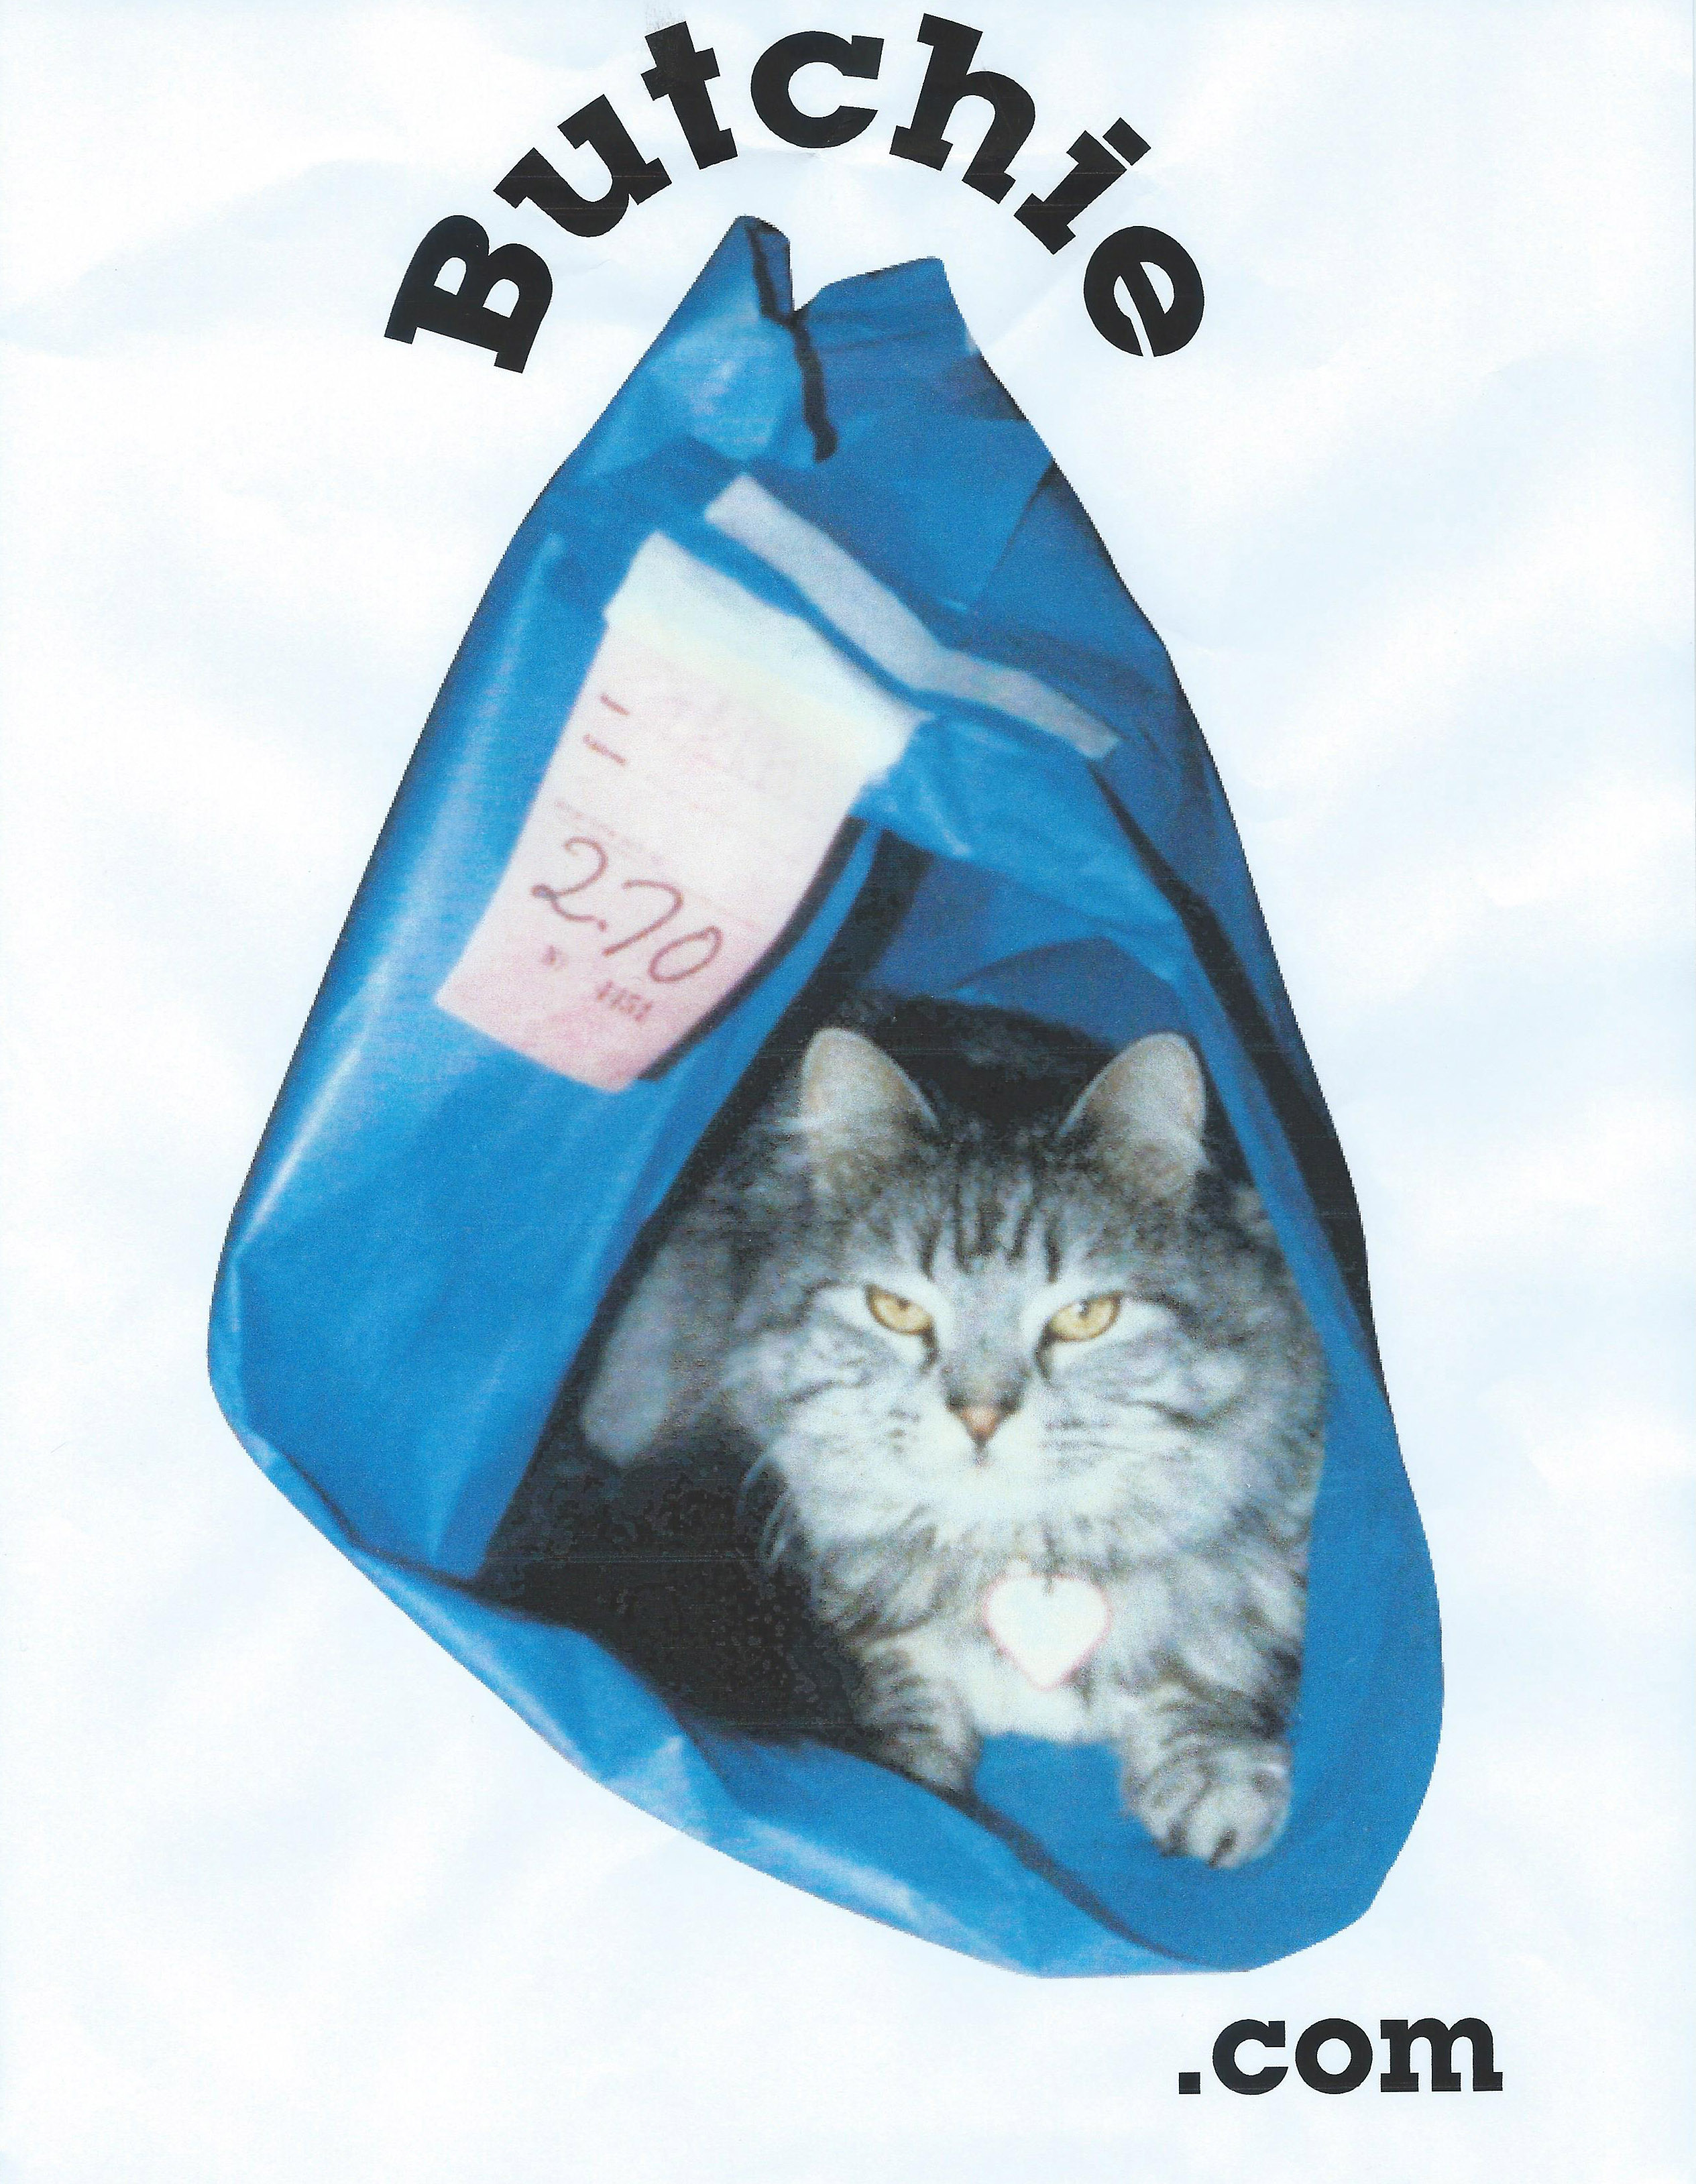 Butchie in a bag